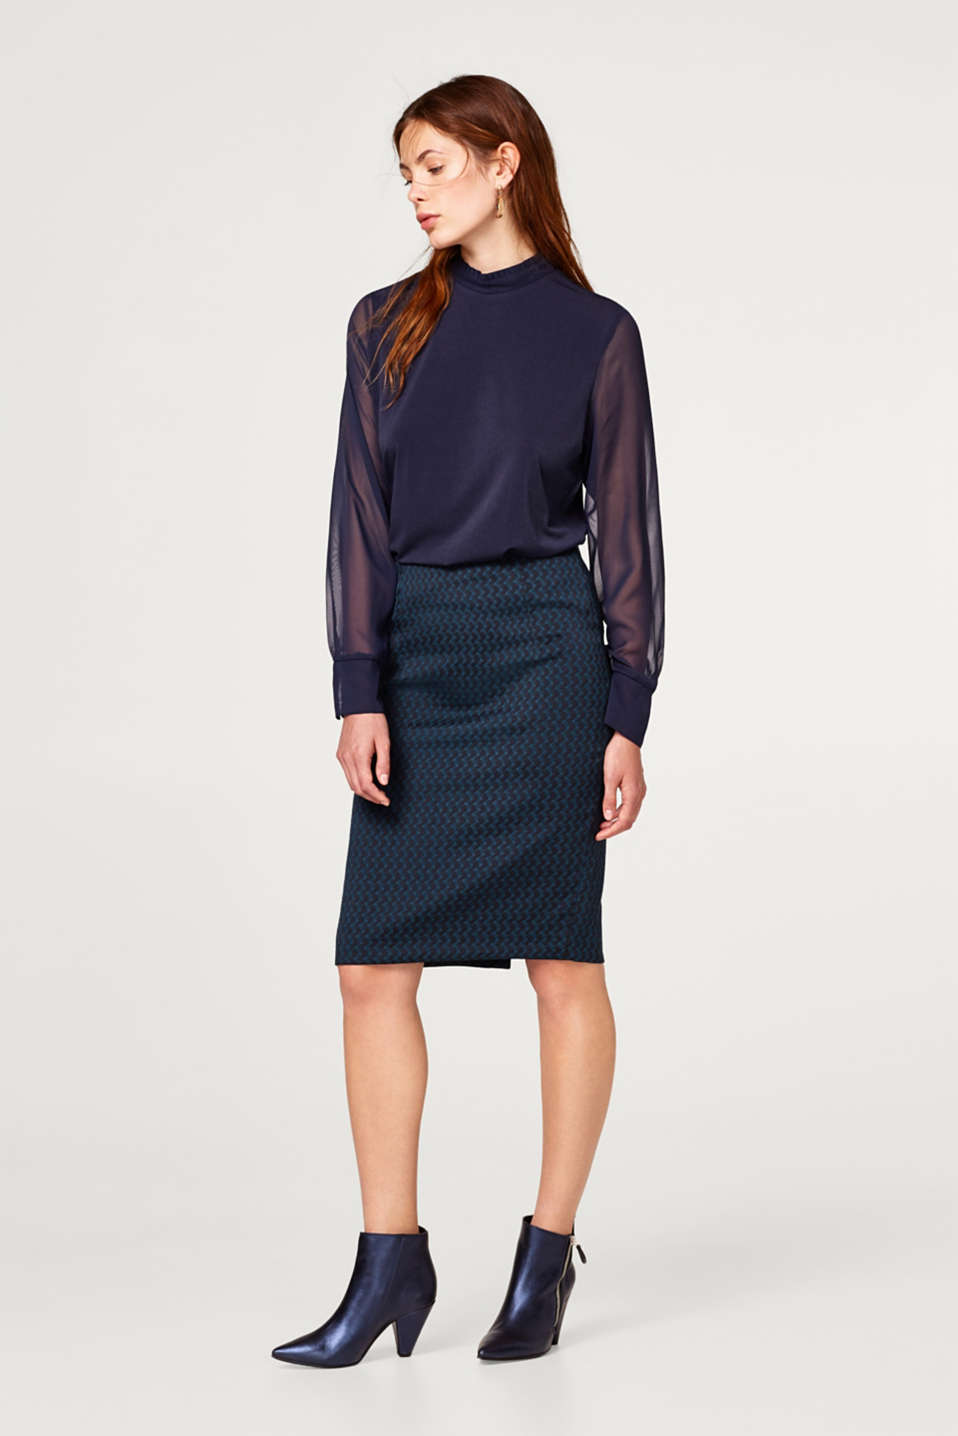 Esprit - Pencil skirt with a jacquard pattern